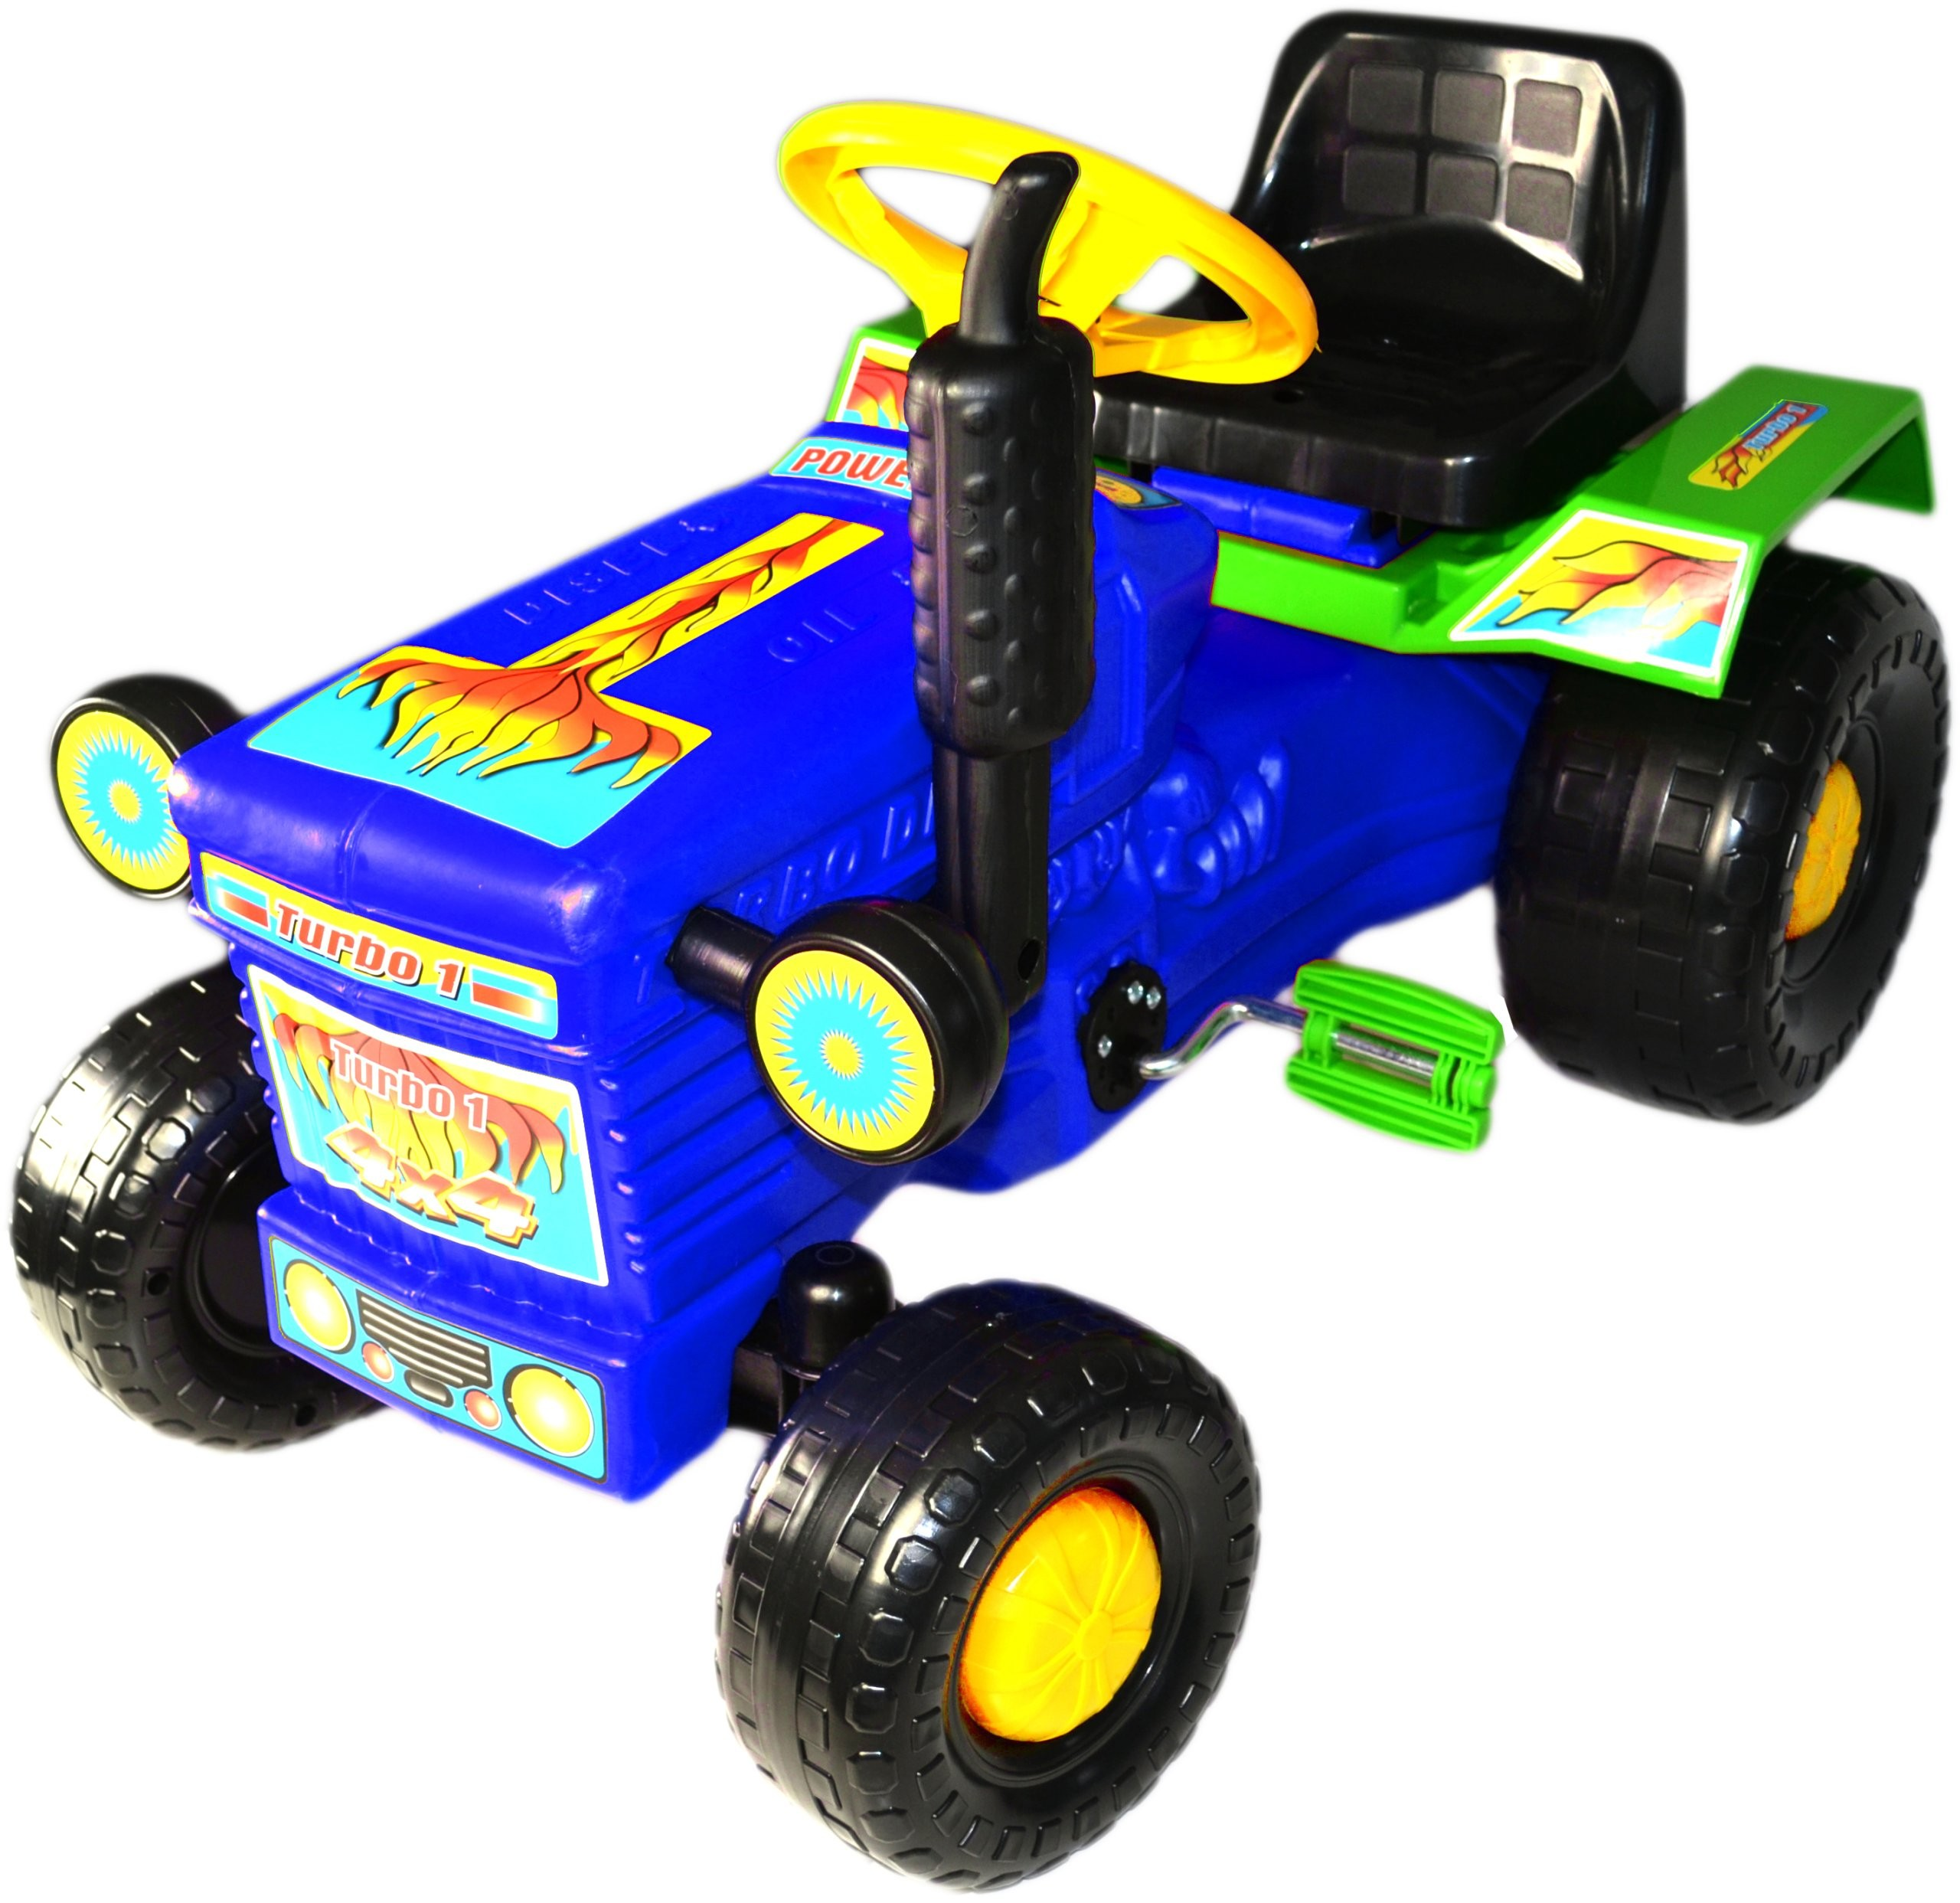 Super Plastic Toys - Tractor cu pedale Turbo blue